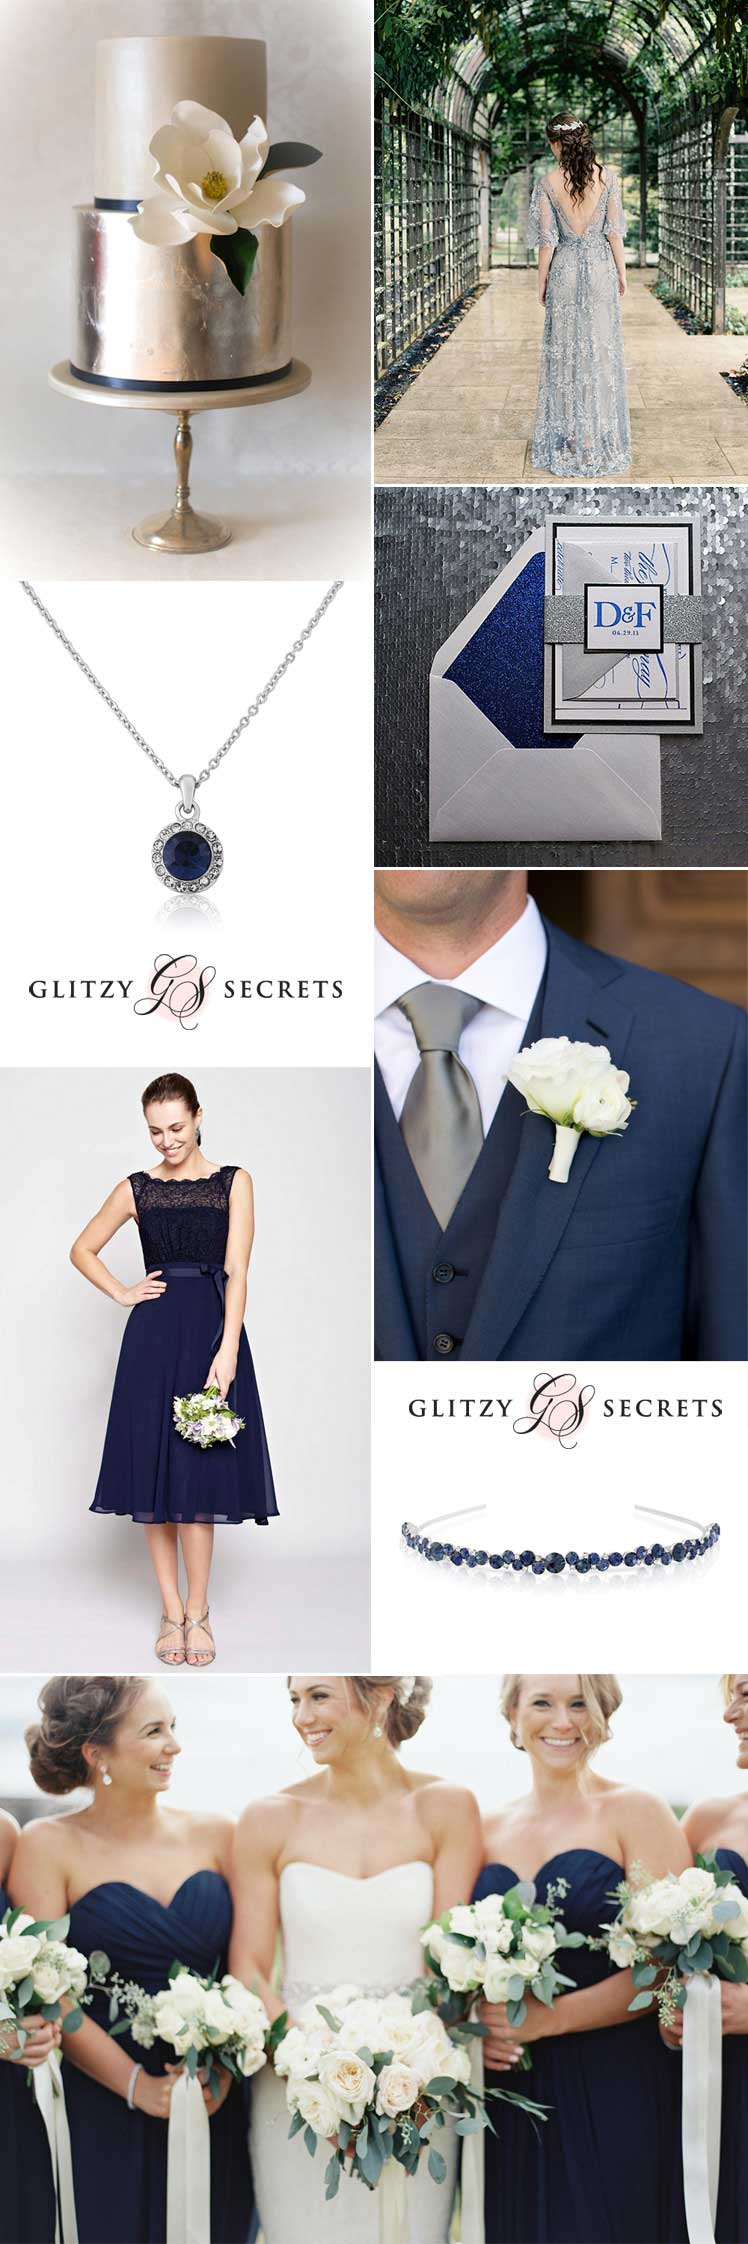 Classic Navy and Silver Wedding Ideas | Glitzy Secrets